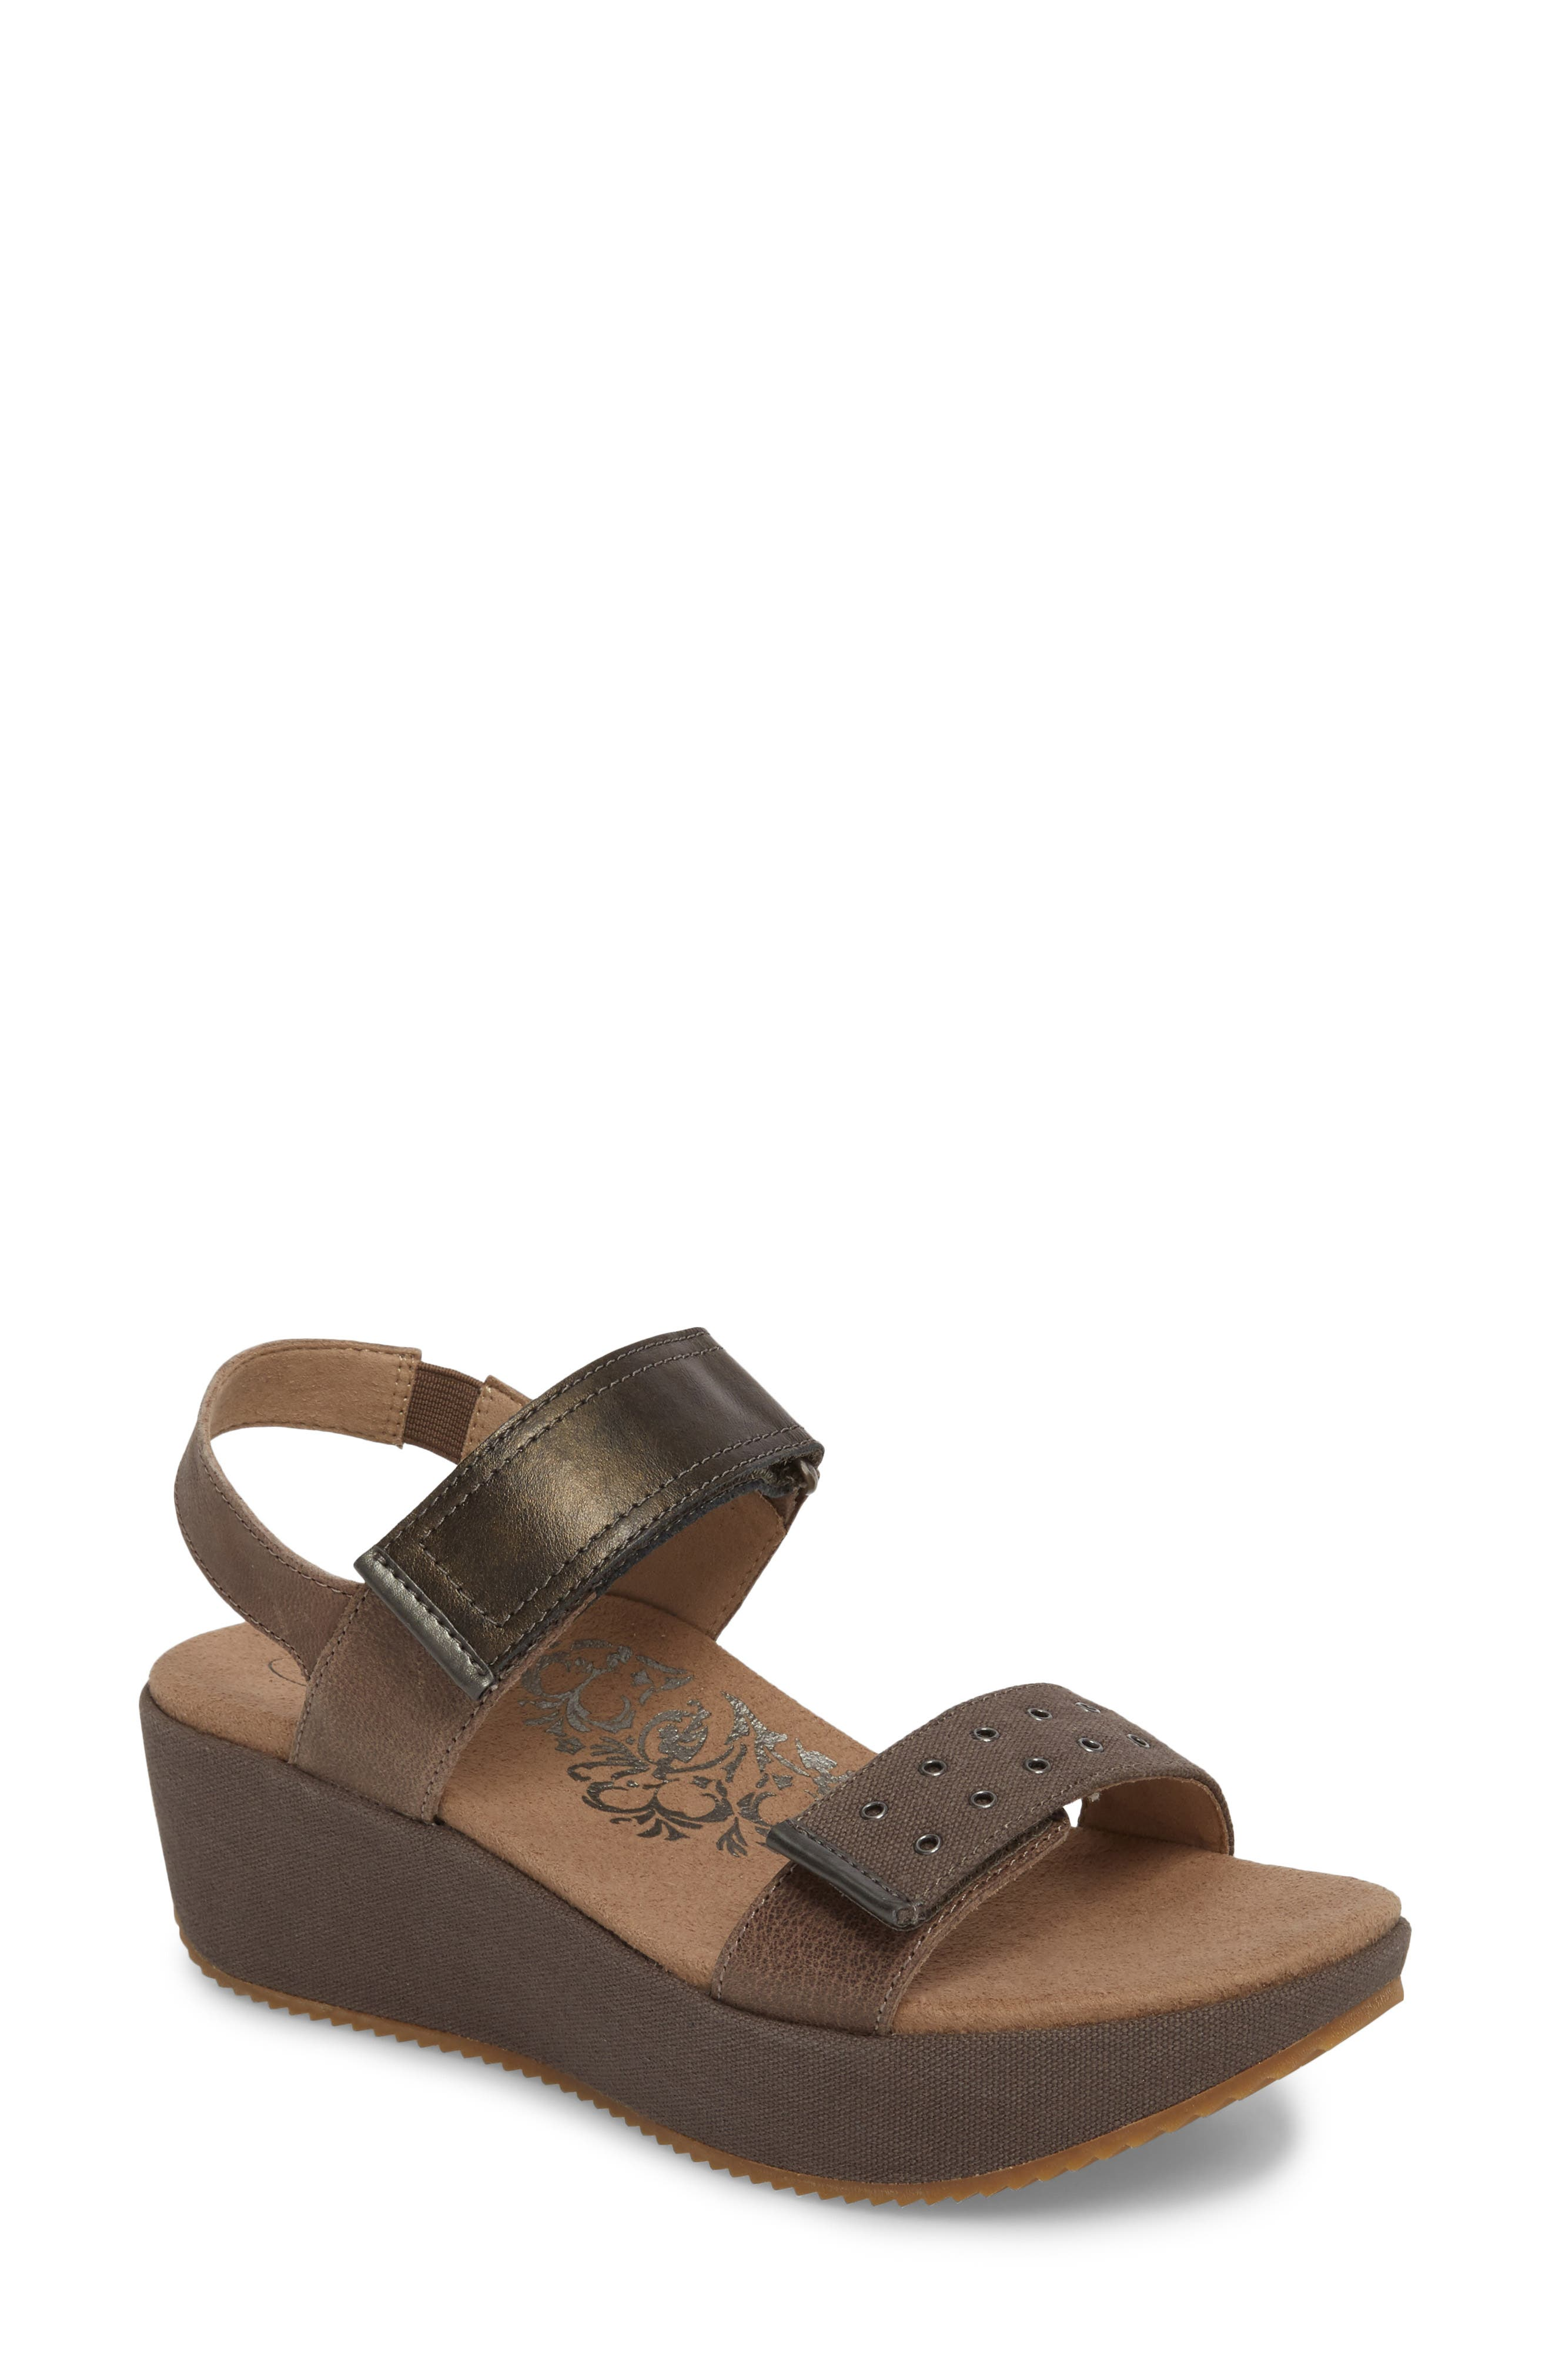 Tiffany Wedge Sandal,                         Main,                         color, Stone Leather